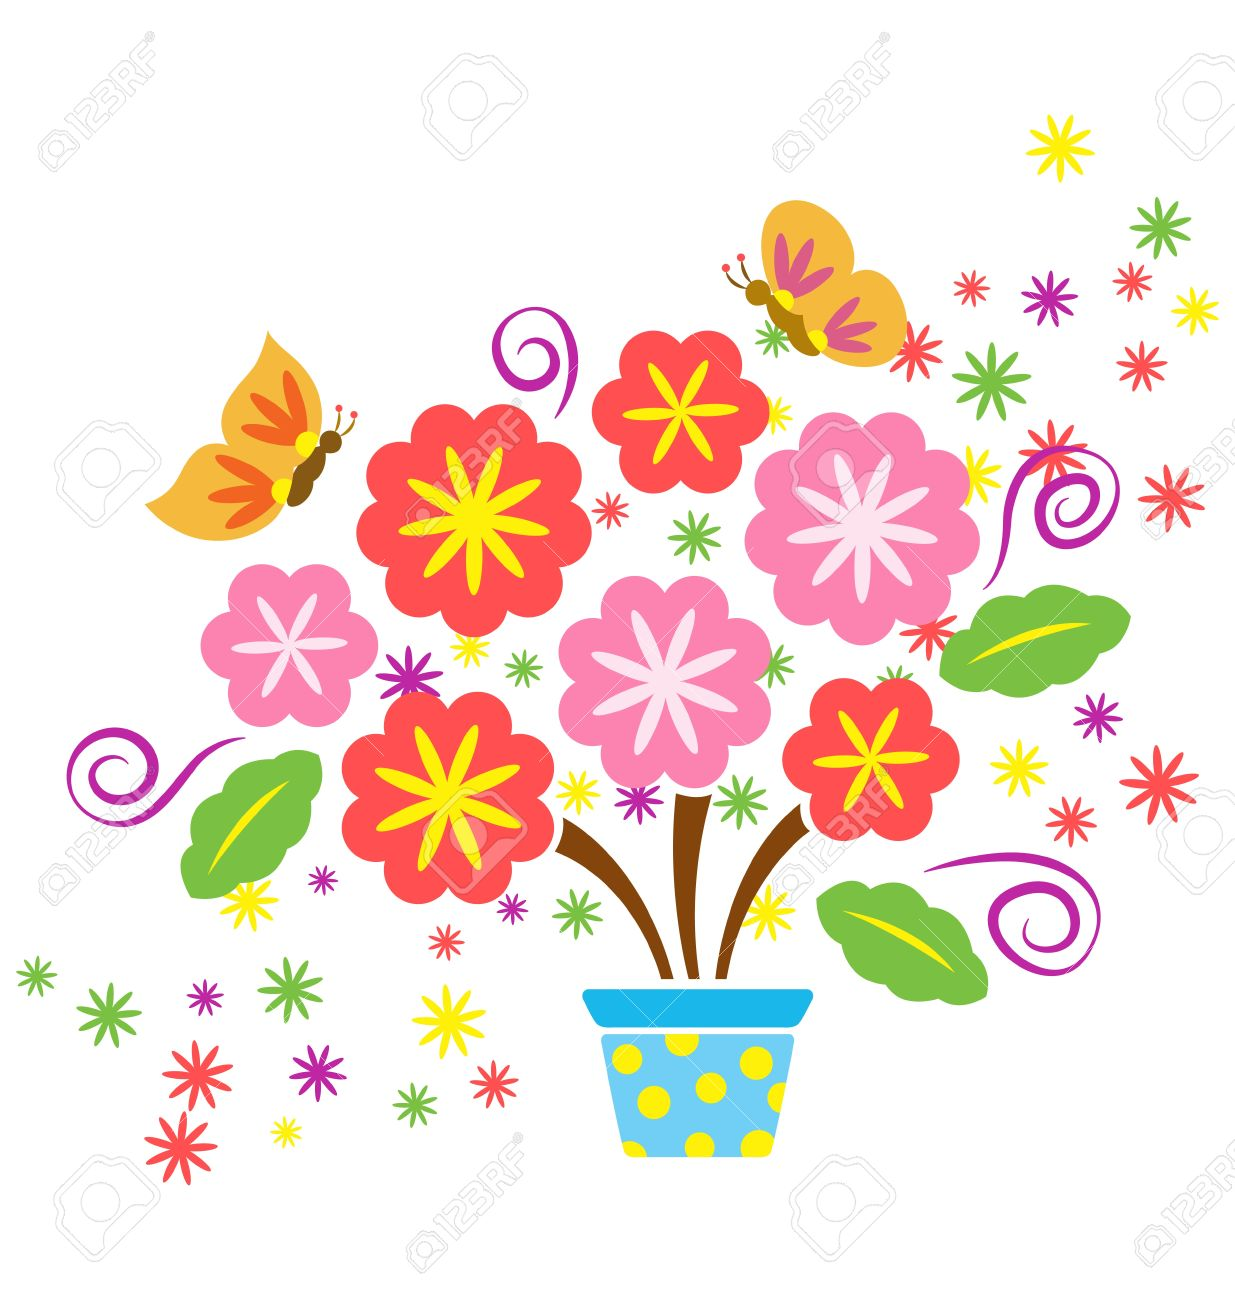 a decorative flower pot with lots of flowers and butterfly flying around stock vector 14462773 - Decorative Flowers